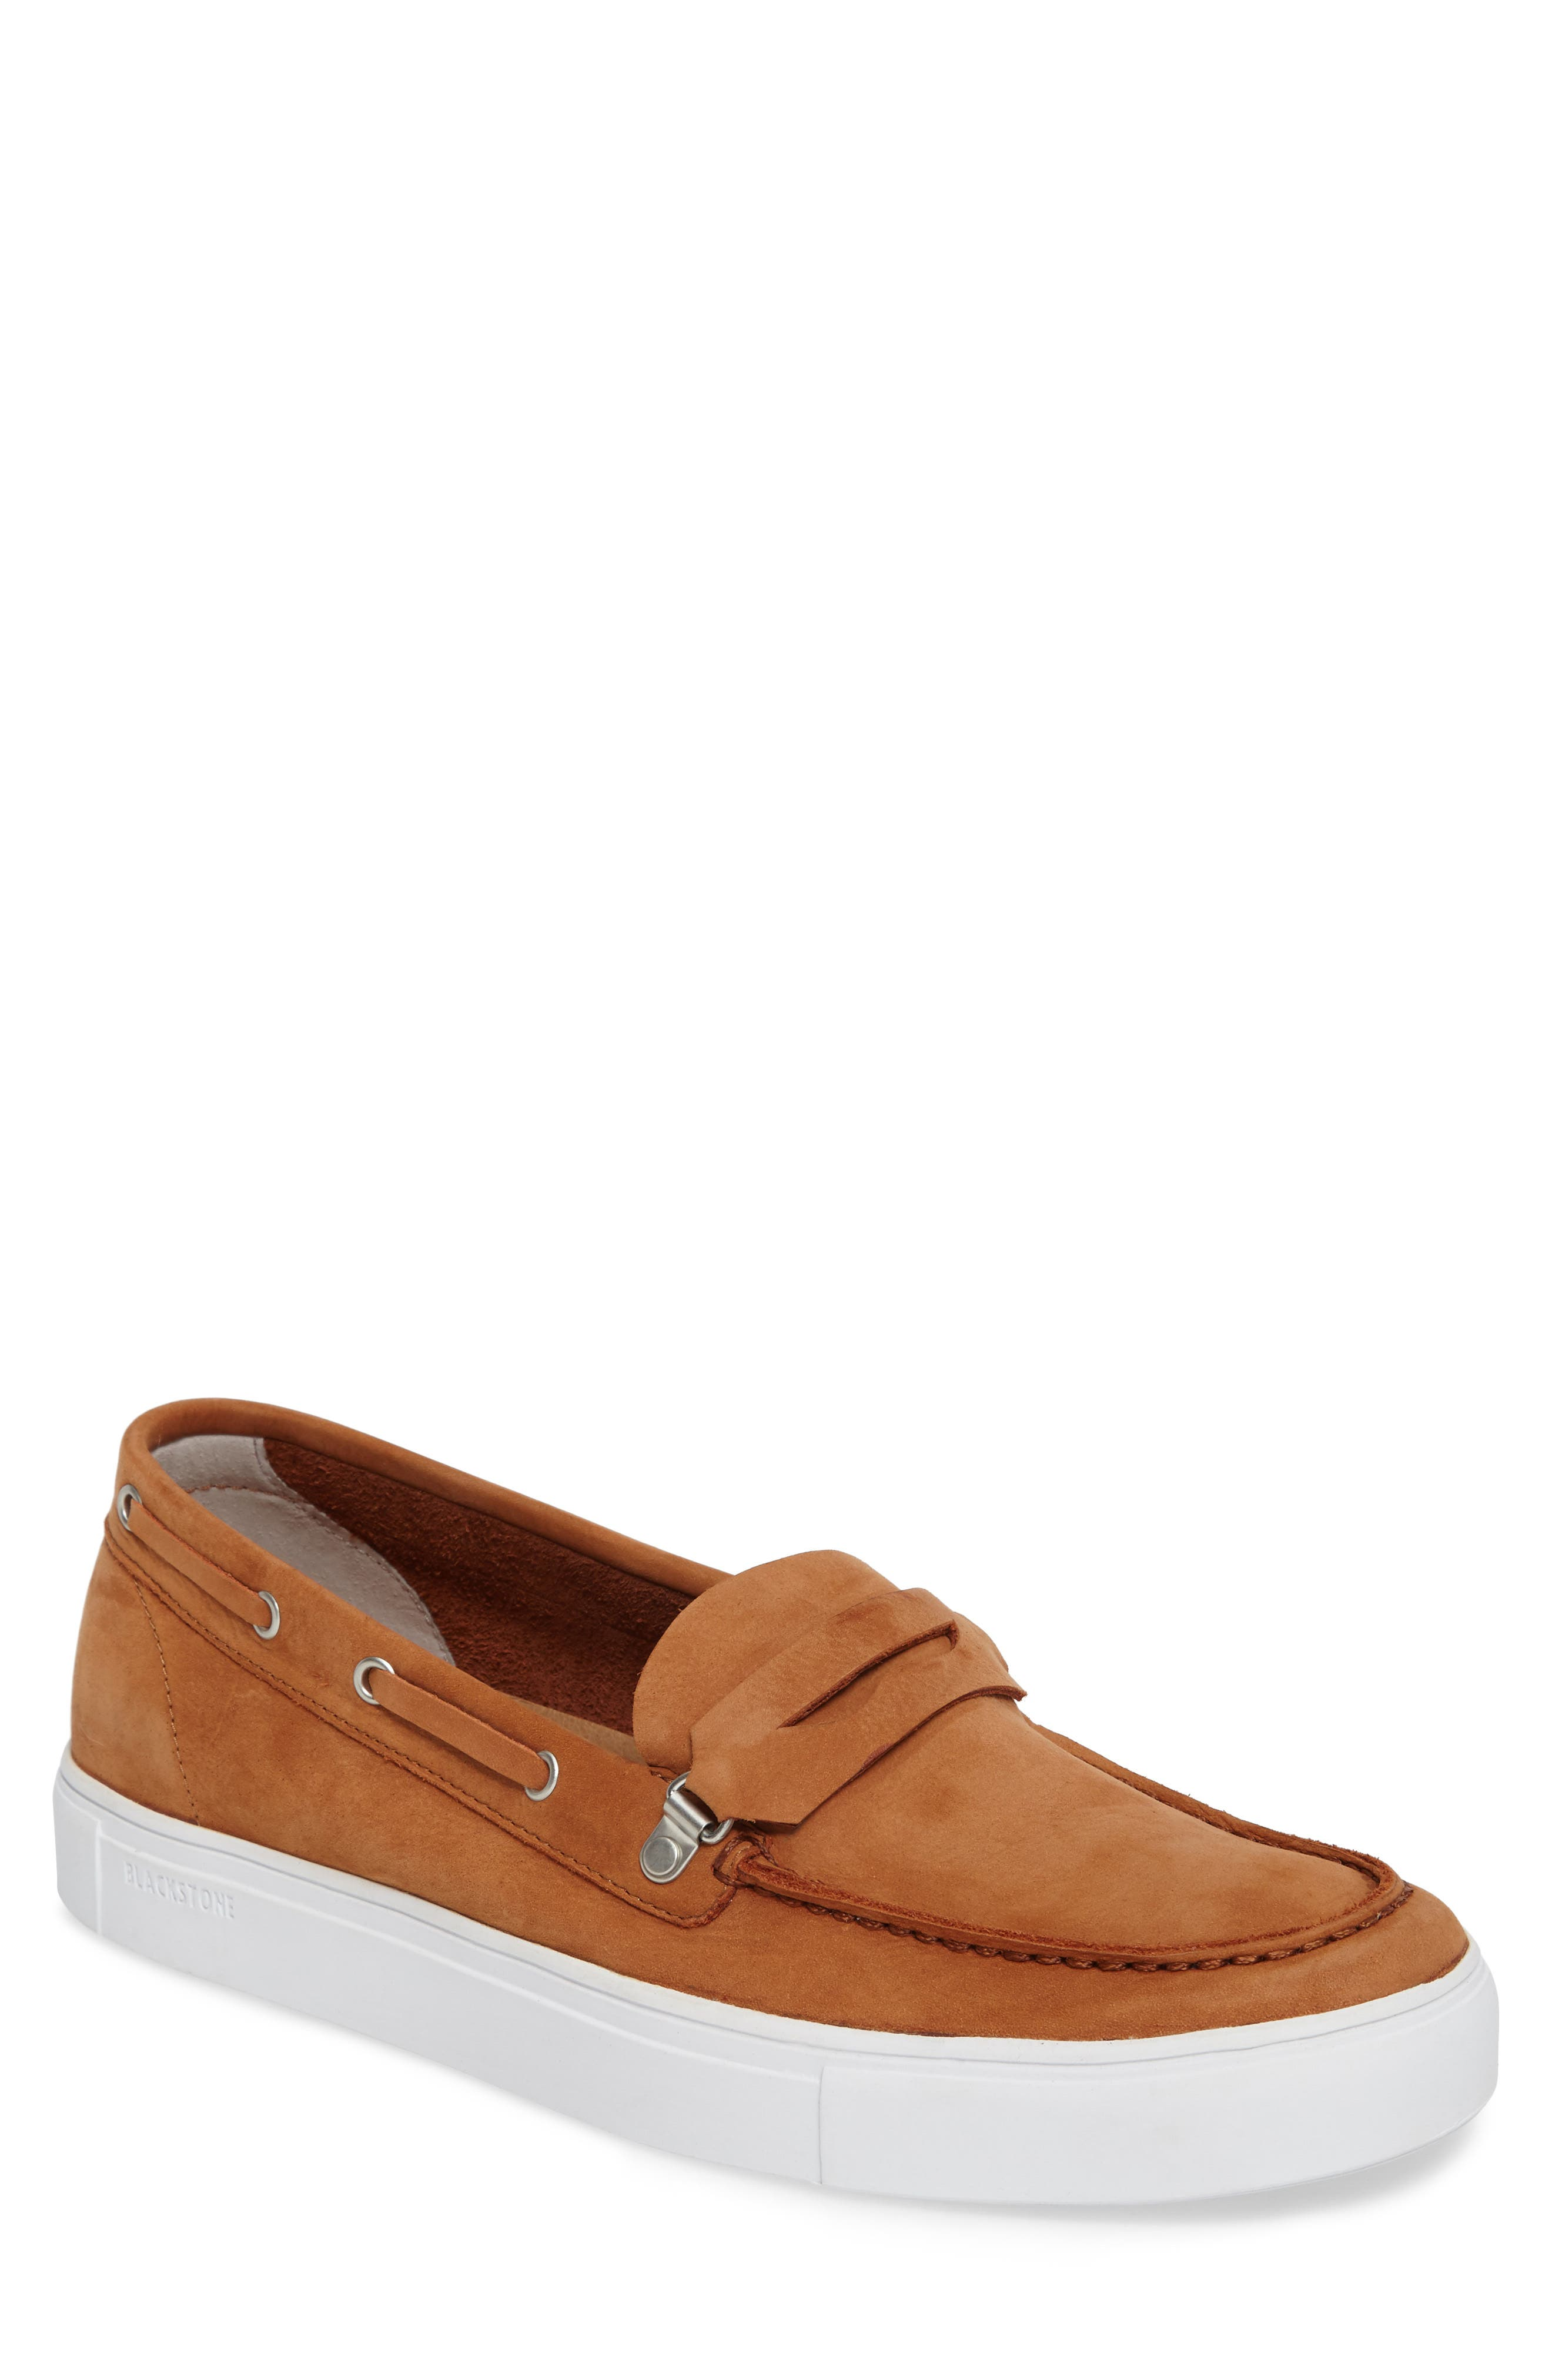 NM15 Loafer Sneaker,                             Main thumbnail 1, color,                             241